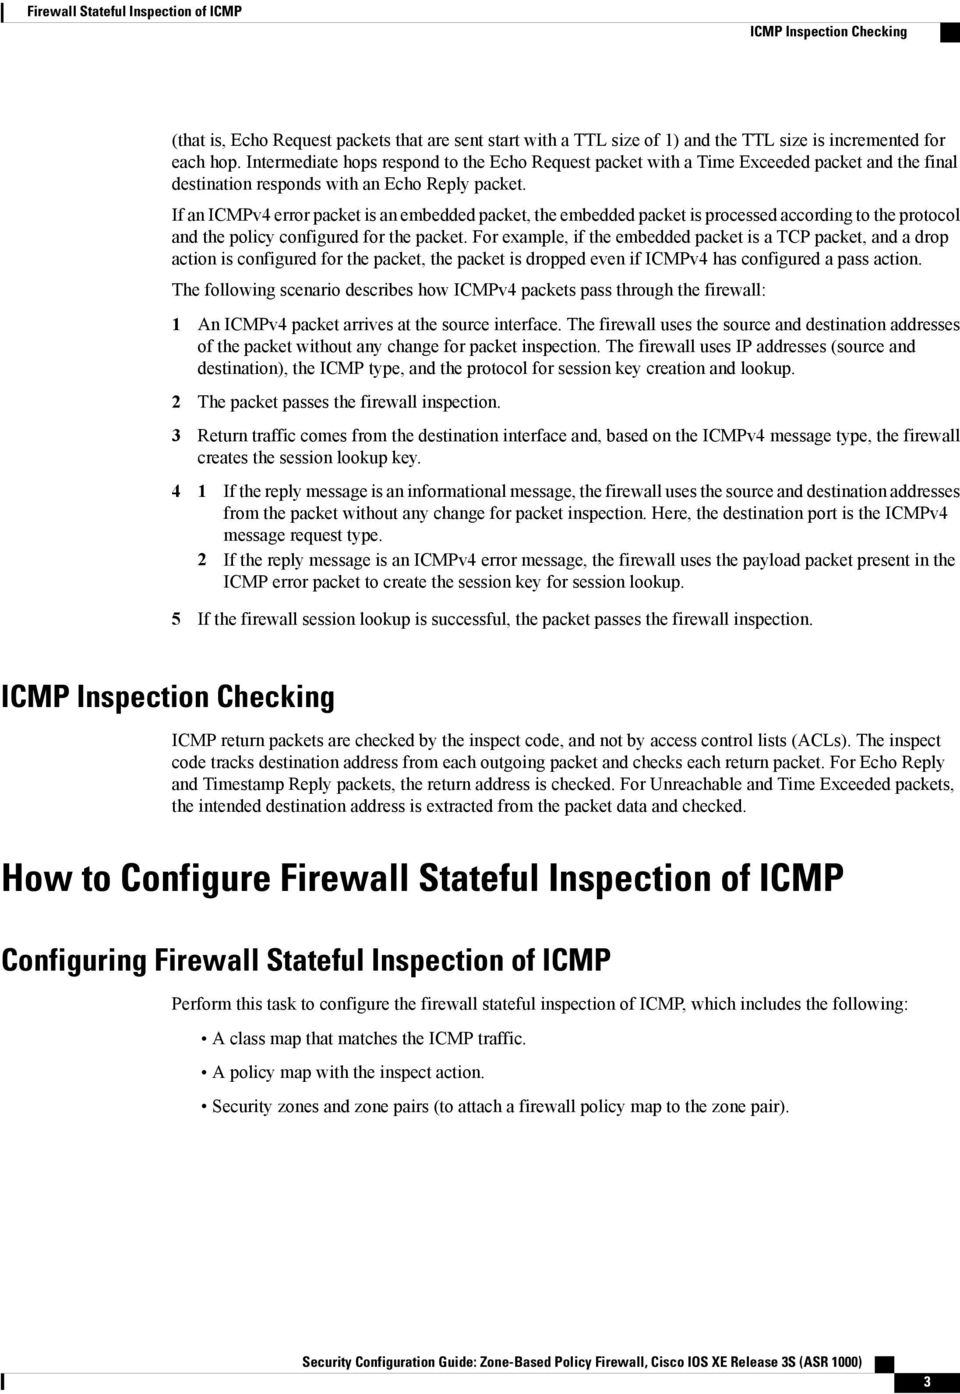 If an ICMPv4 error packet is an embedded packet, the embedded packet is processed according to the protocol and the policy configured for the packet.